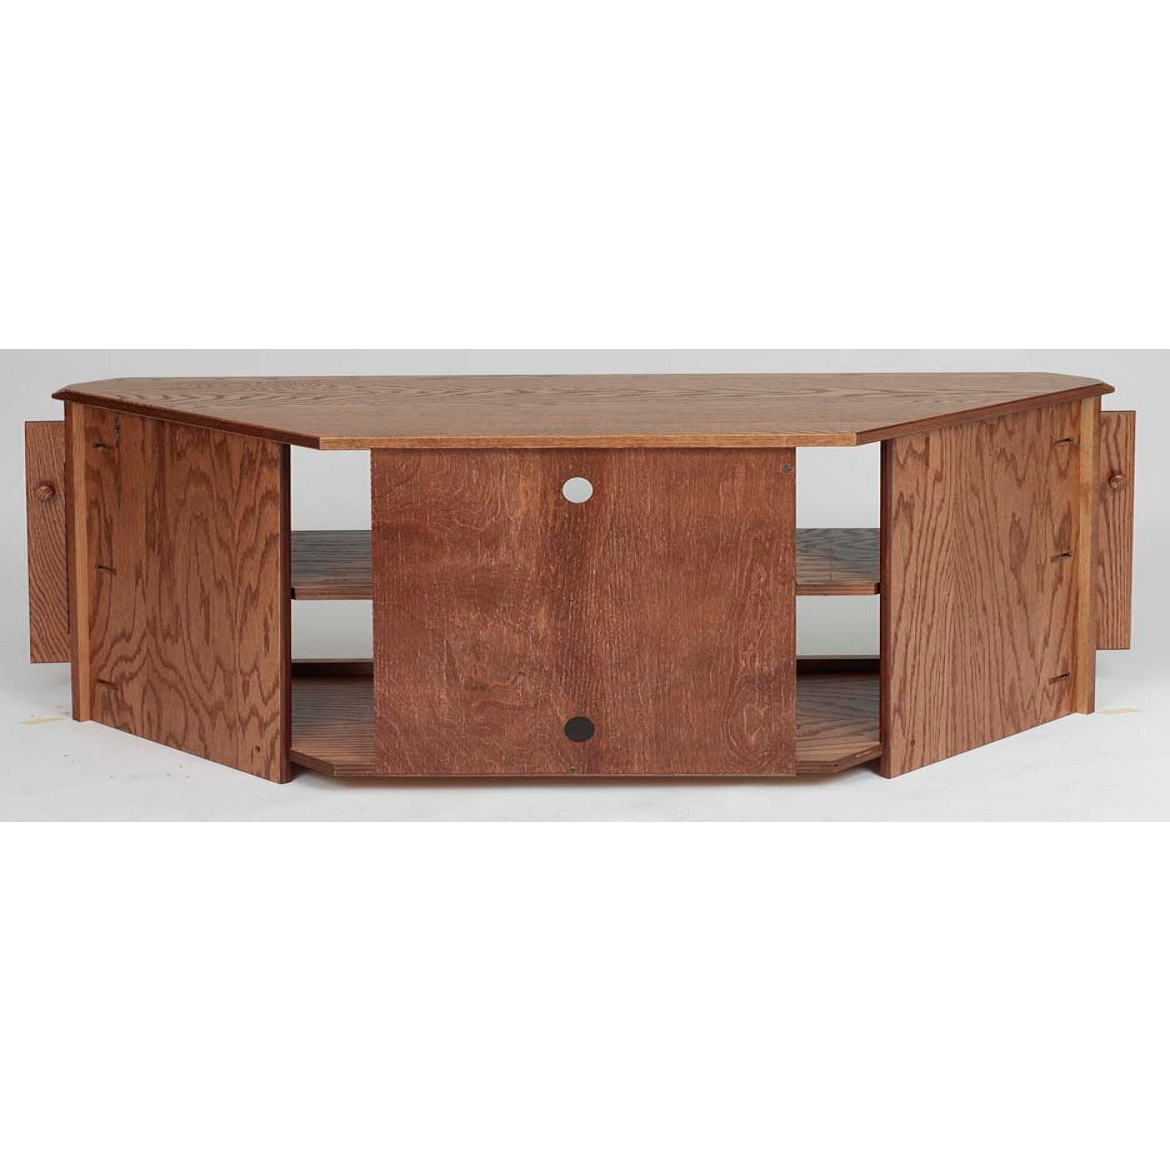 "Country Style Tv Stands Pertaining To Best And Newest Solid Oak Country Style Corner Tv Stand W/cabinet – 64"" – The Oak (View 9 of 20)"